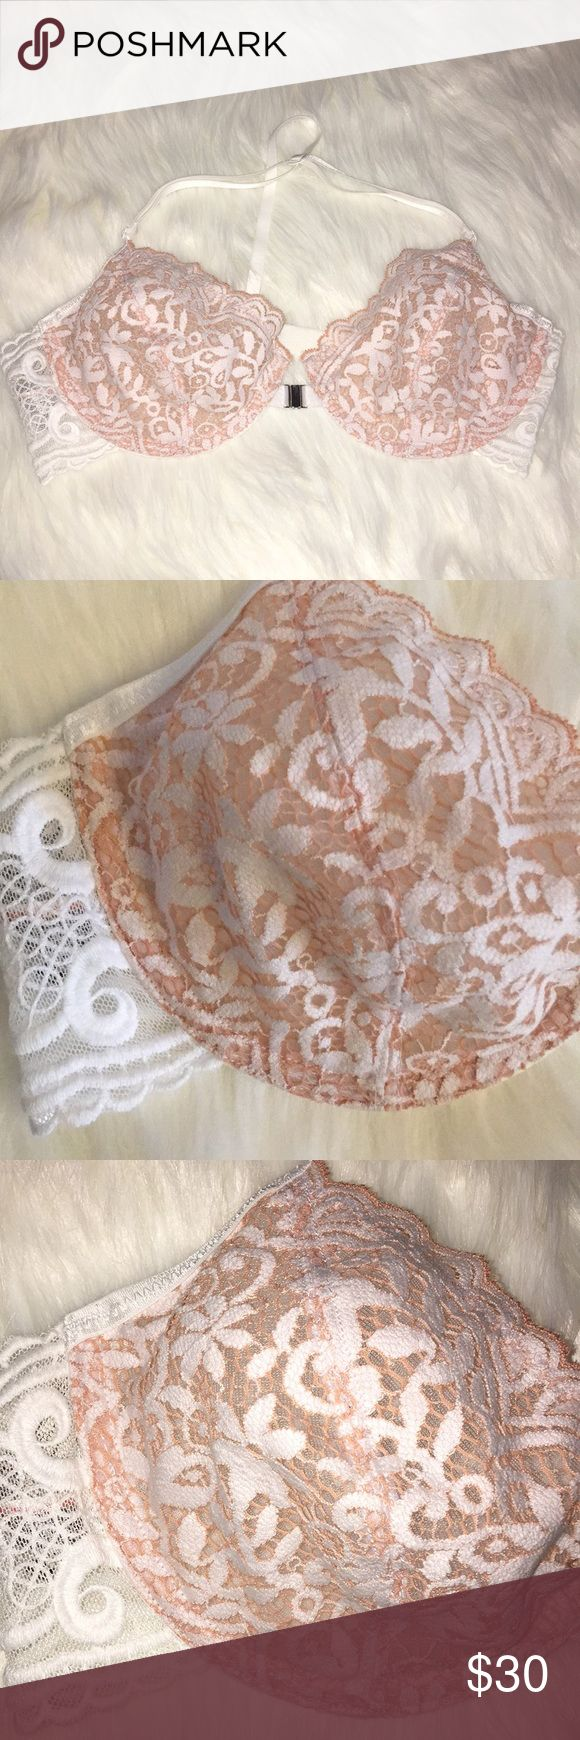 Free People What She Said Underwire Bra 32D *So sexy lace bra with a sheer, barely there design featuring underwire for support. *Thin elastic T-straps are adjustable for a comfortable fit *Clip closure at the center of bust for an easy on-off *32D Free People Intimates & Sleepwear Bras